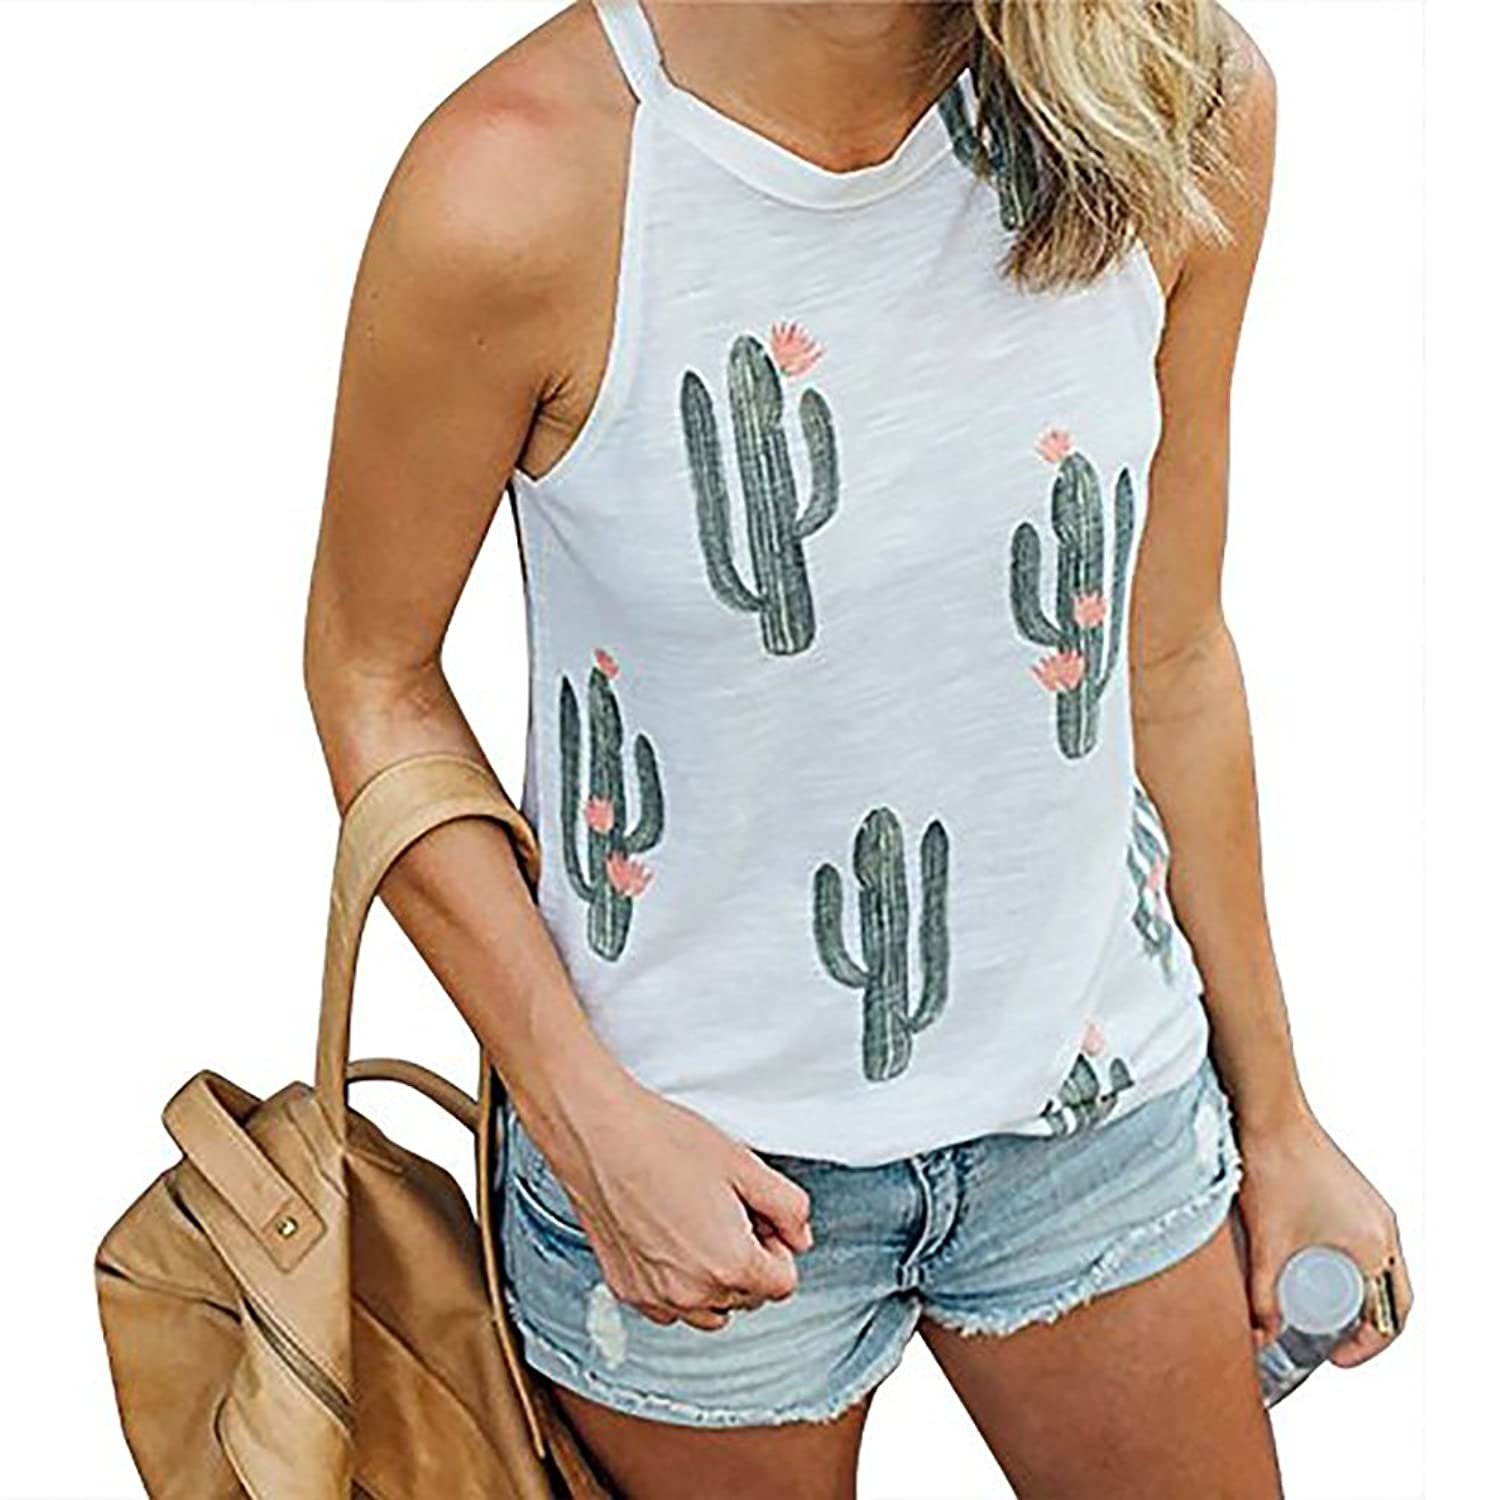 43929b65c4476 Features: Cute cactus printing camisoles, high neck, sleeveless, casual  loose fit tank tops for women. Casual halter design and cute cactus  printing tank ...